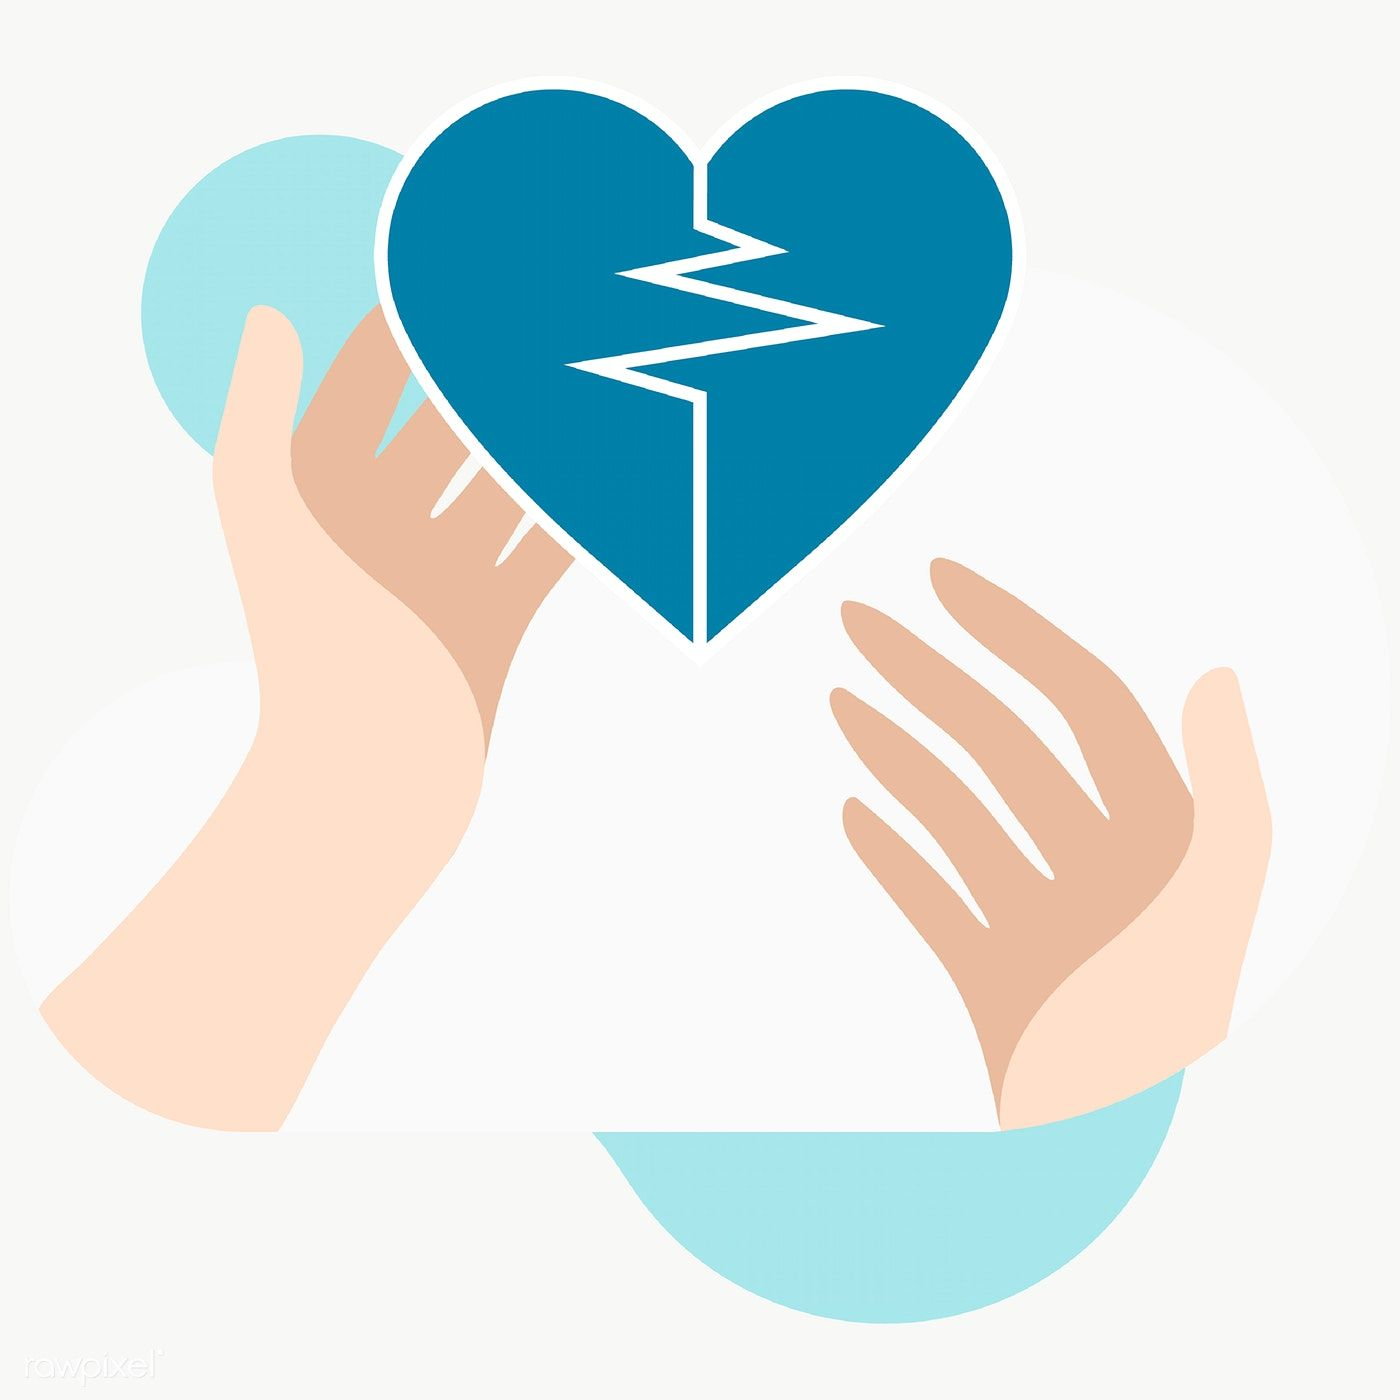 Hands Supporting Heart Problem Disease Campaign Free Image By Rawpixel Com Katie In 2021 Heart Problems Medical Illustration Medical Wallpaper